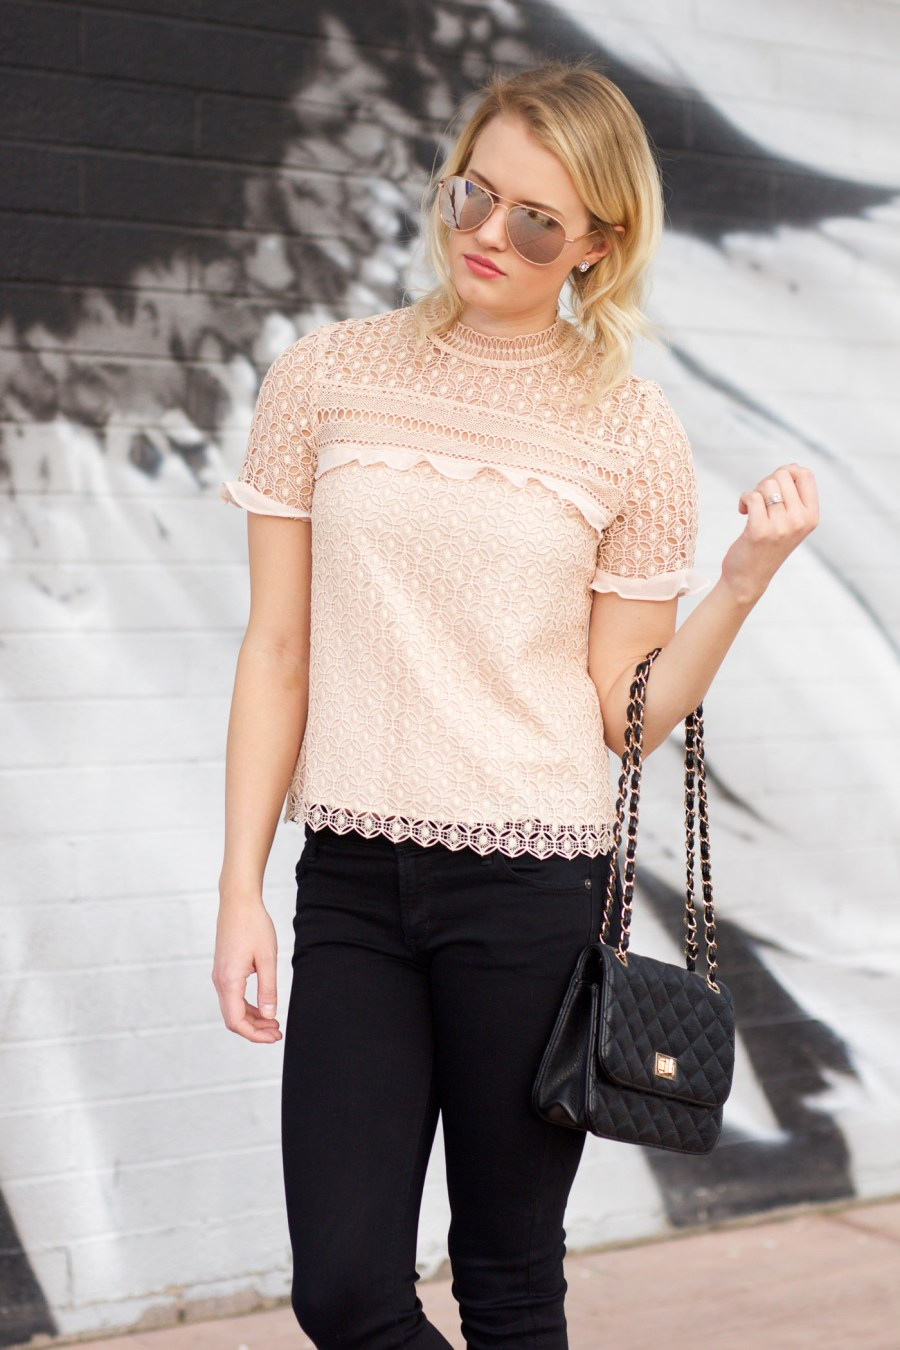 How to find designer dupes, ZARA, pink lace top, Chanel copycat flats, fashion blog, Treats and Trends, Jamie Kamber, pinterest outfit idea